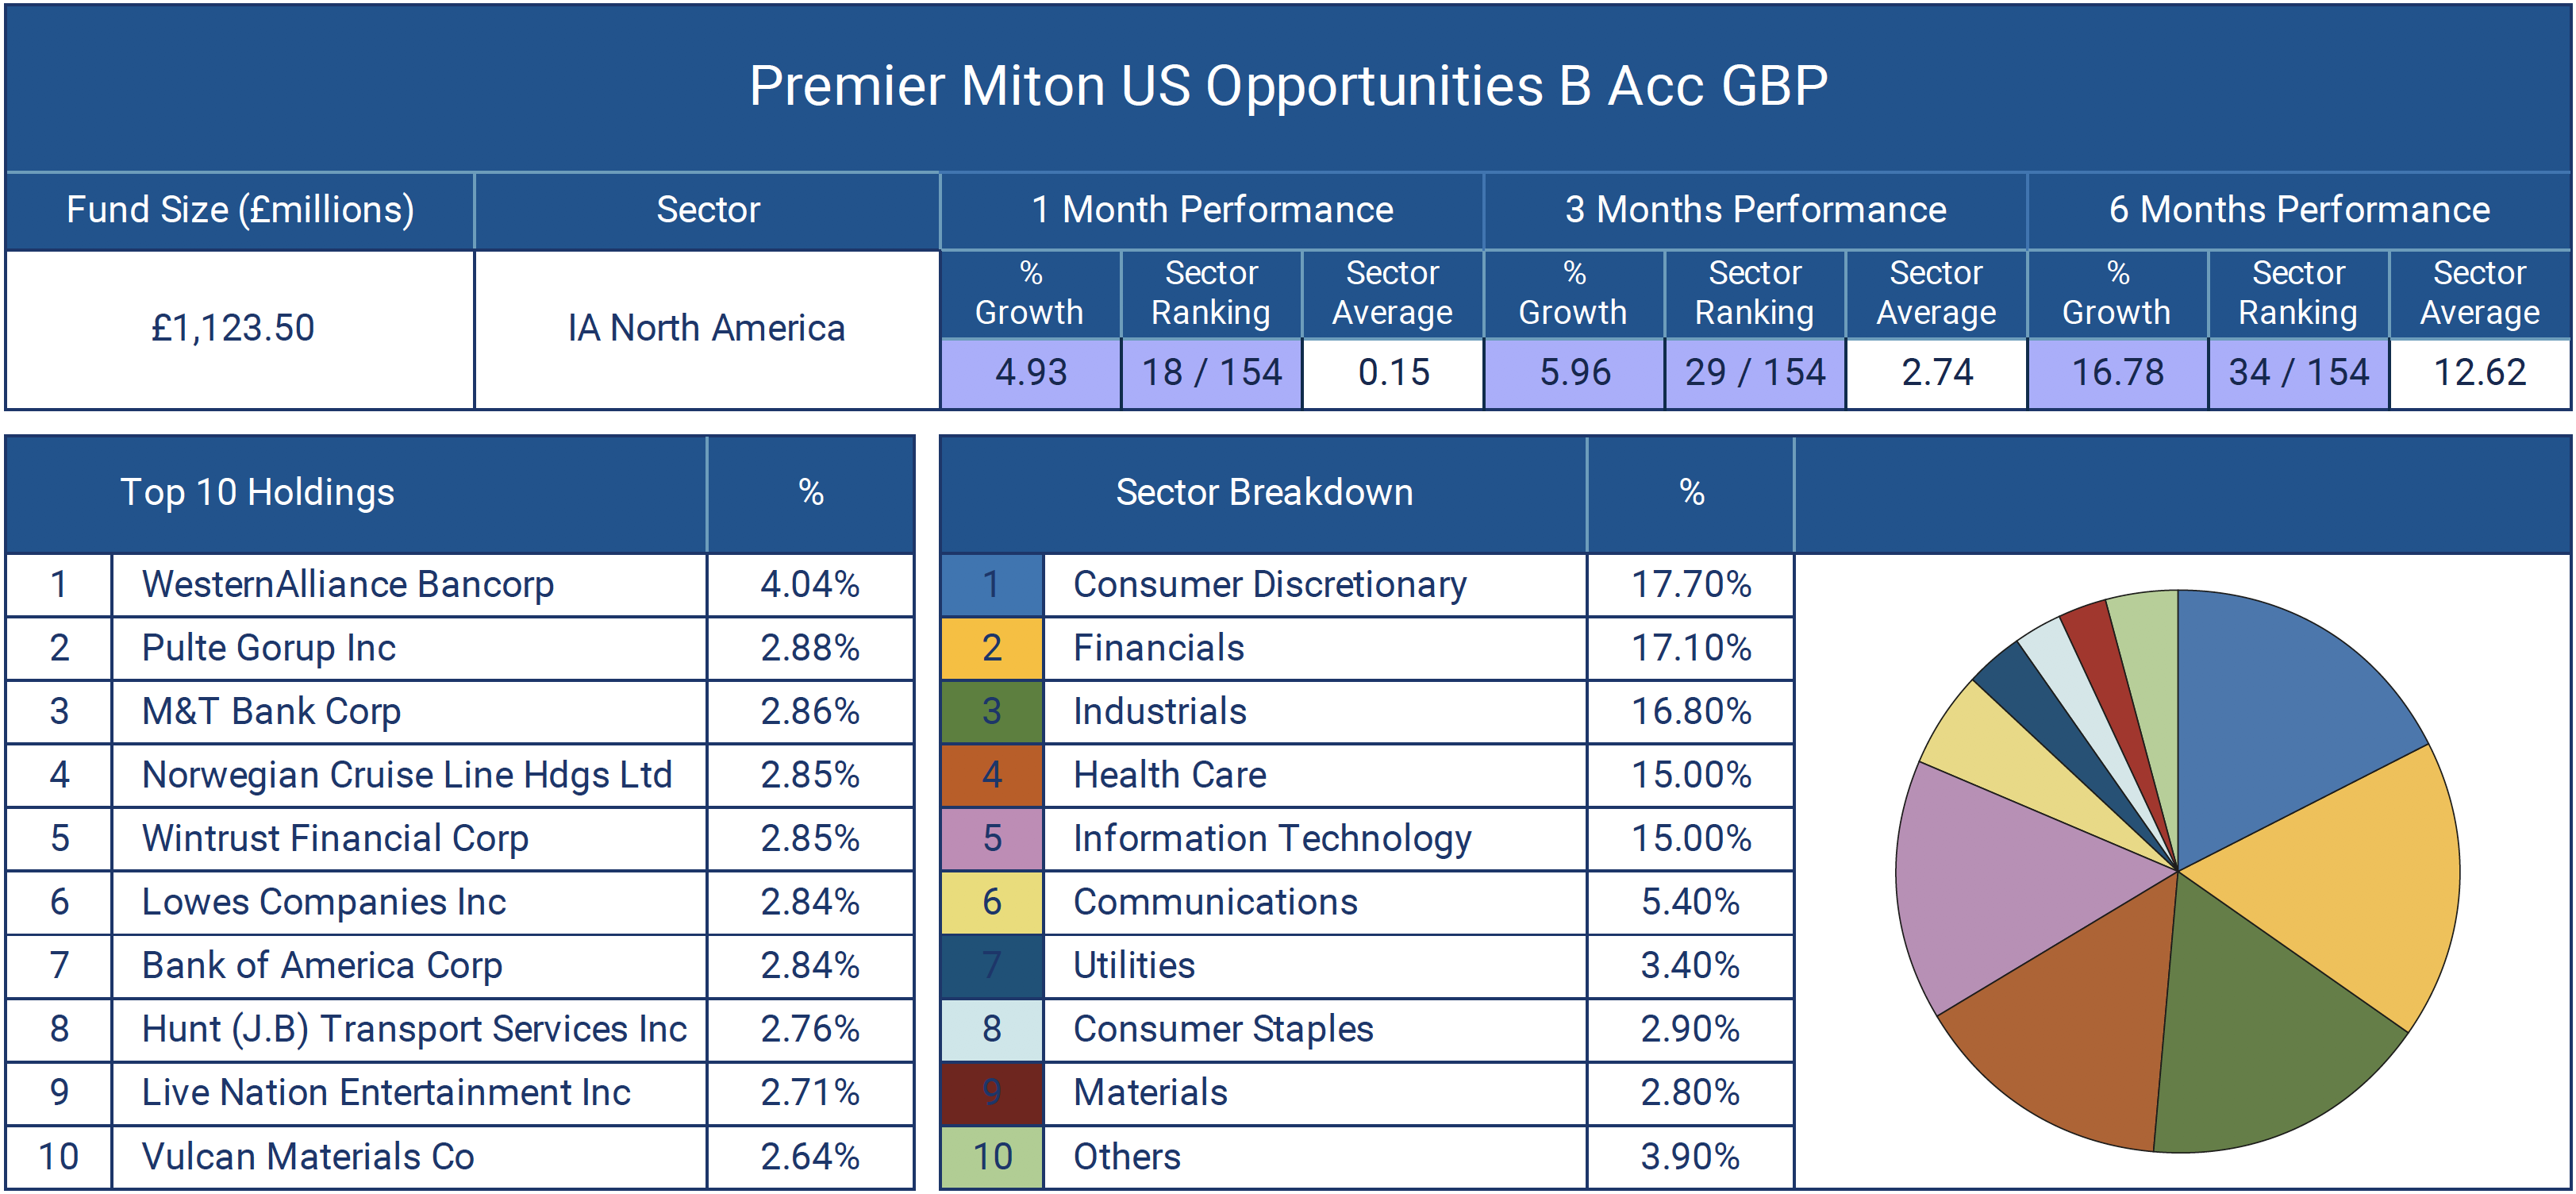 Premier Miton US Opportunities